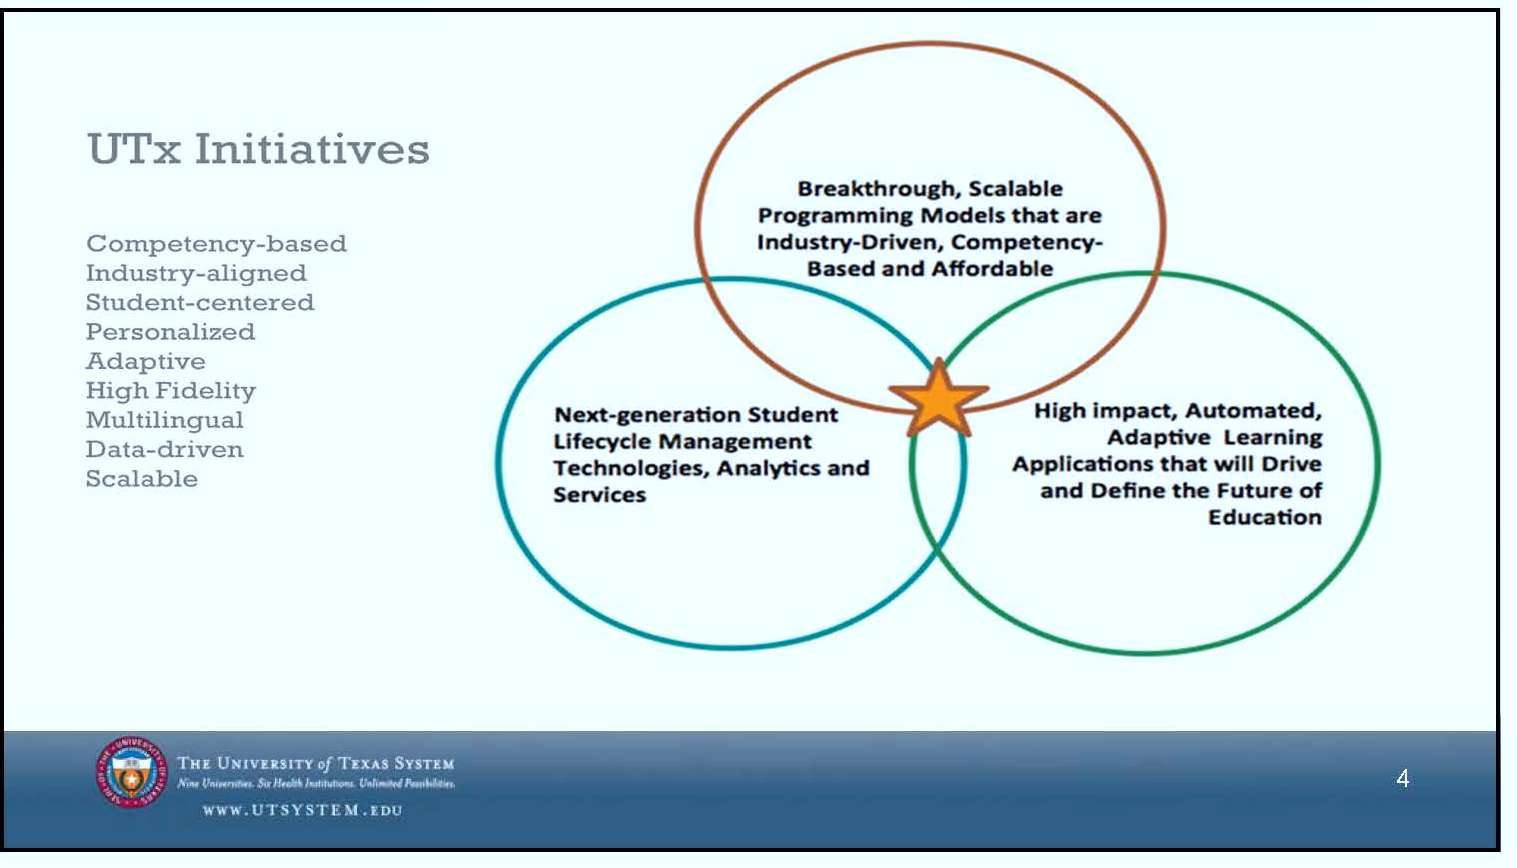 Graphic from the University of Texas System on UTx Initiatives: competency based, industry aligned, student centered, personalized, adaptive, high fidelity, multilingual, data driven, scalable. Venn diagram shows intersection of three segments: Next-generation student lifecycle management technologies, analytics, and services, for one; Breakthrough, scalable programming models that are industry-driven competency based and affordable, for another; and High-impact, automated, adaptive learning applications that will drive and define the future of education for a third.